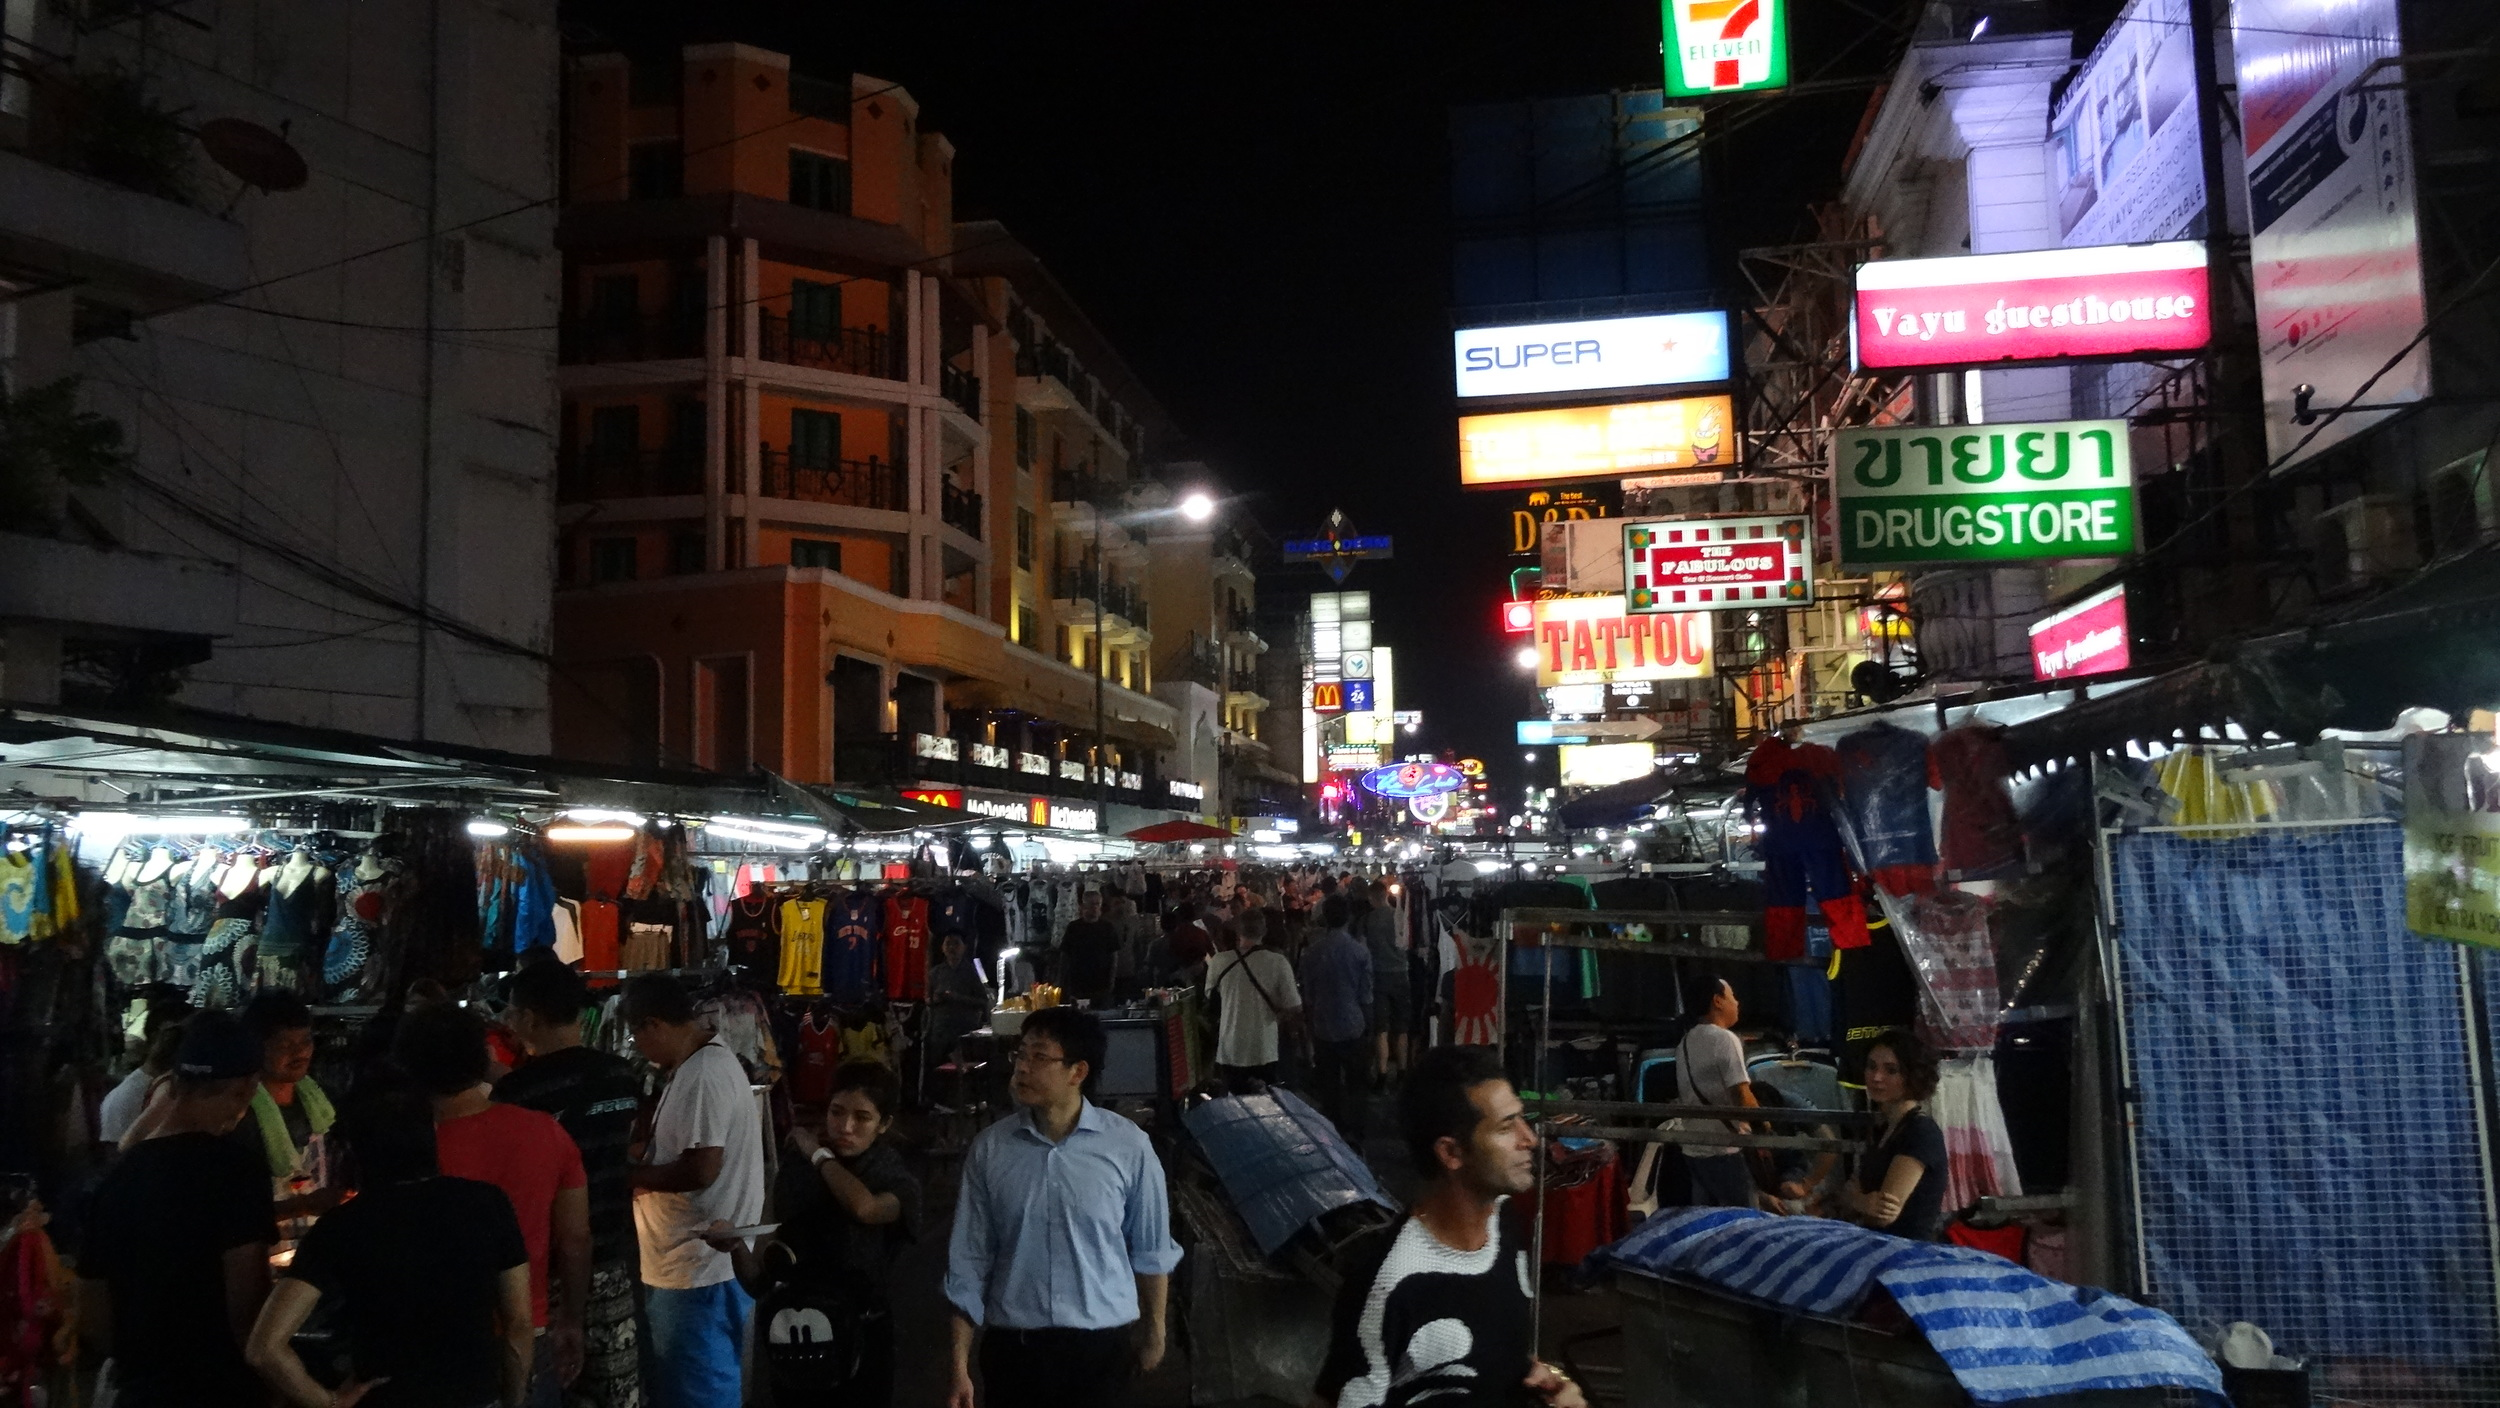 Khao San Road, a legendary backpacker rite of passage. It offers everything you want, and some things you'll regret (like the fried scorpios!), for cheap. This place goes hard every night of the week.